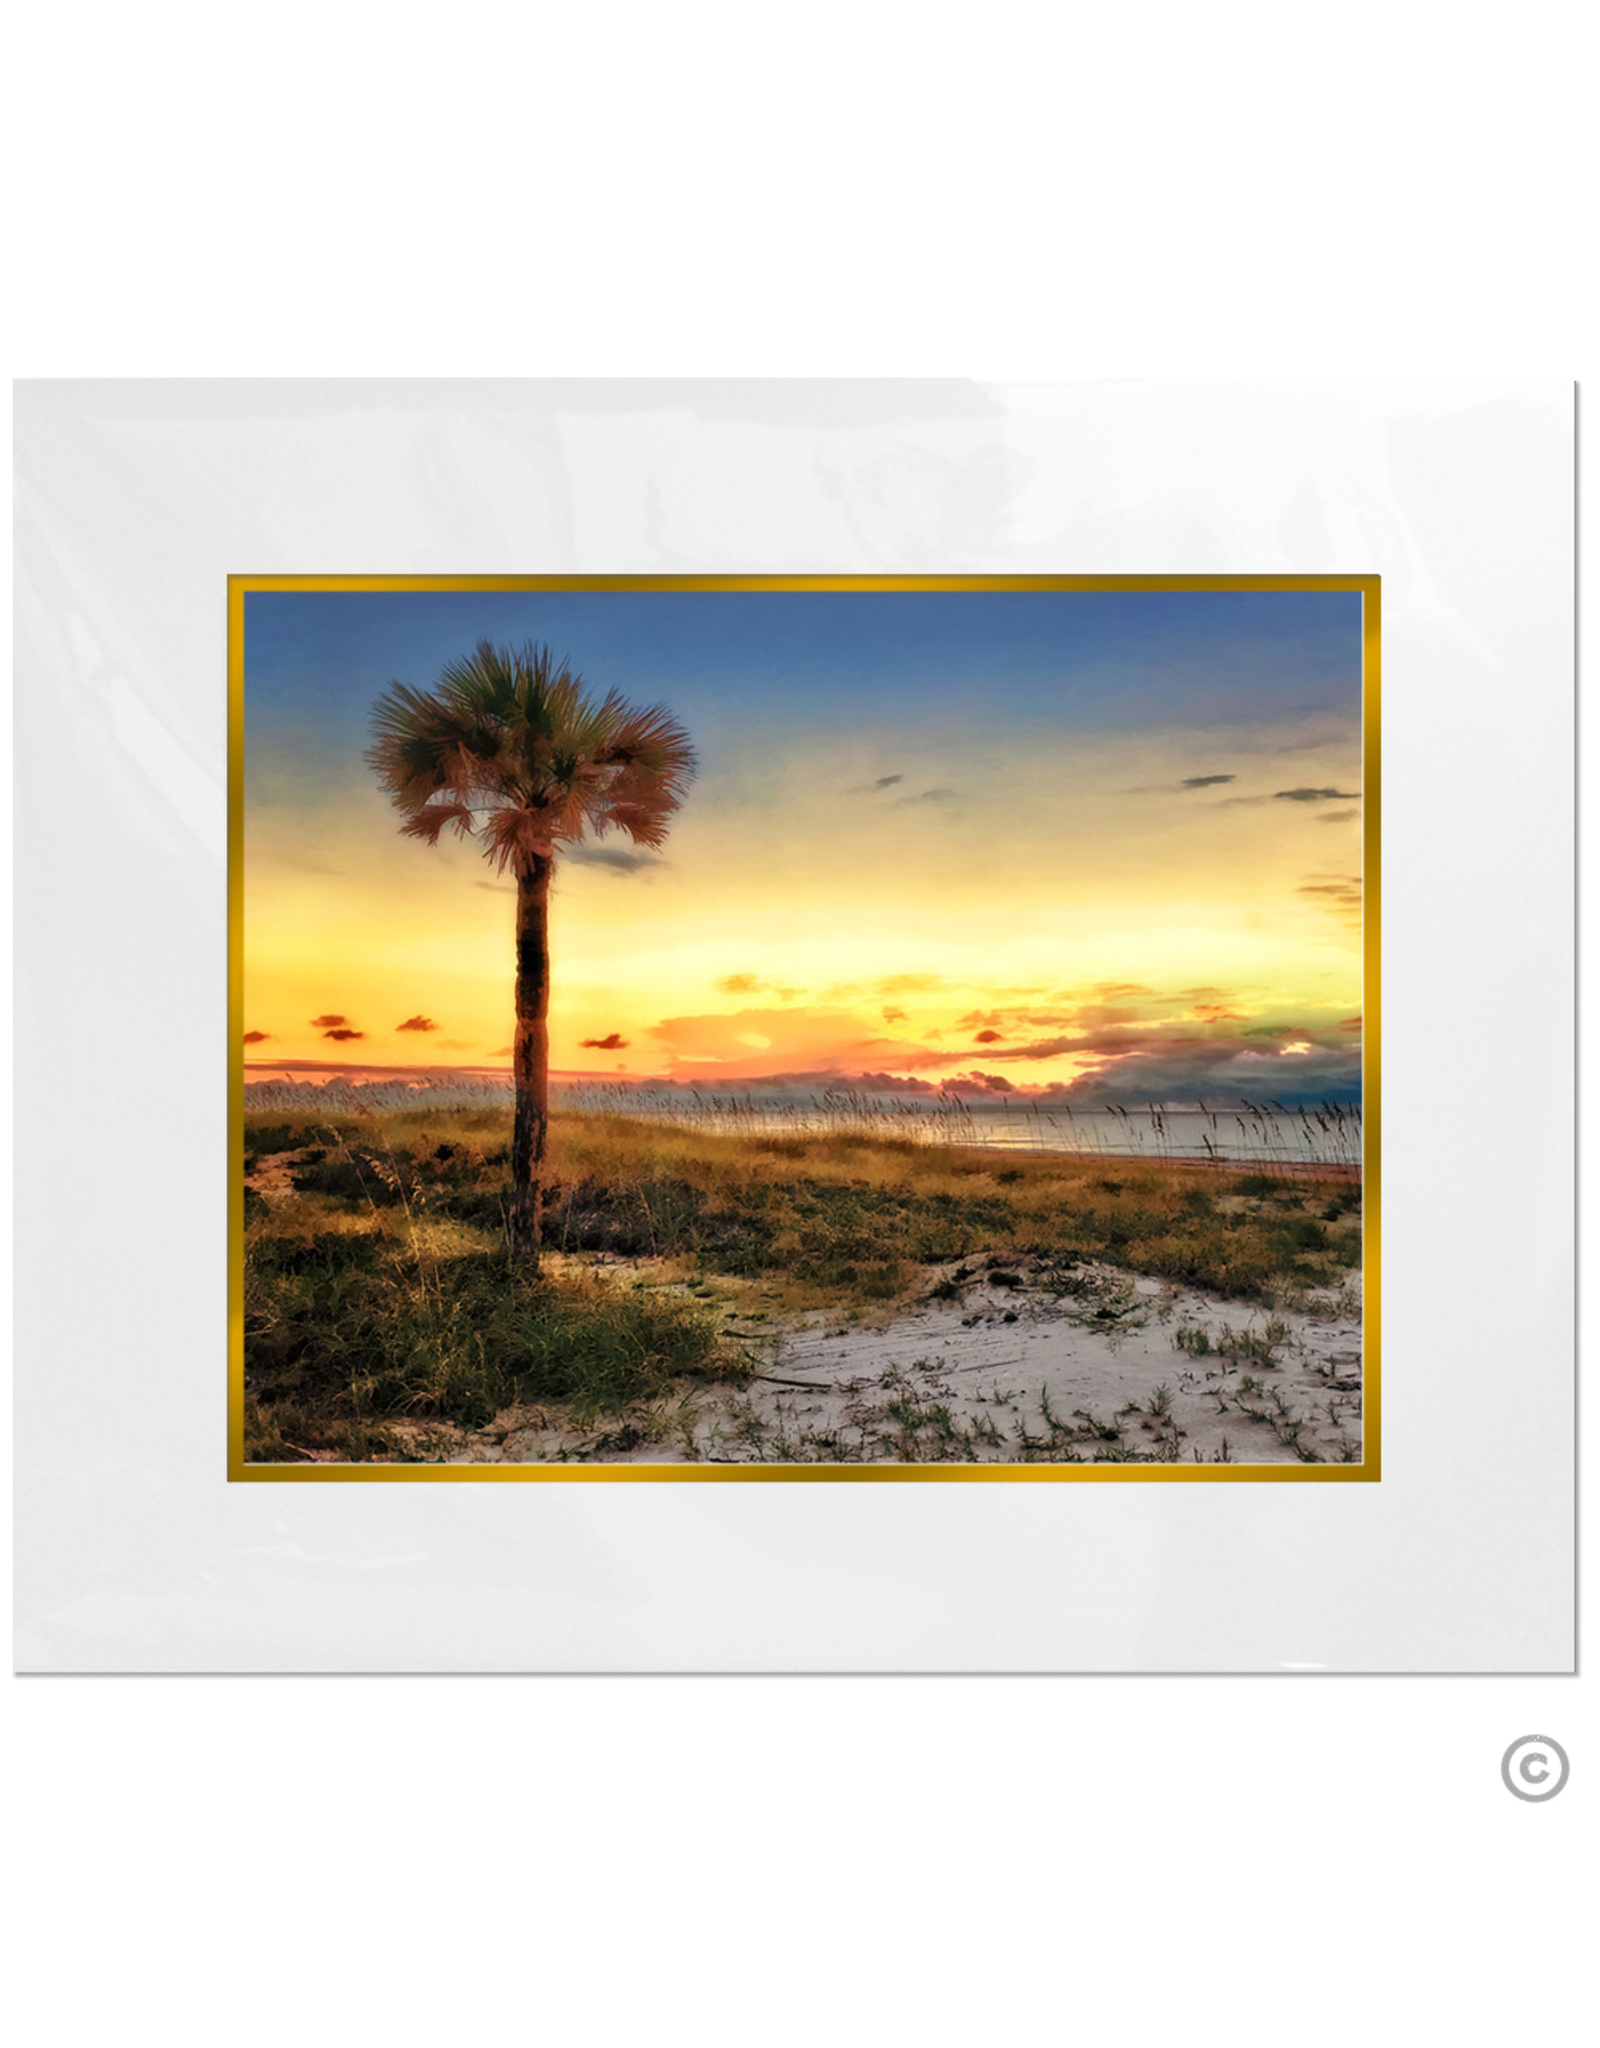 Maureen Terrien Photography Art Print Amelia Island Sunset 8x10 - 11x14 Matted